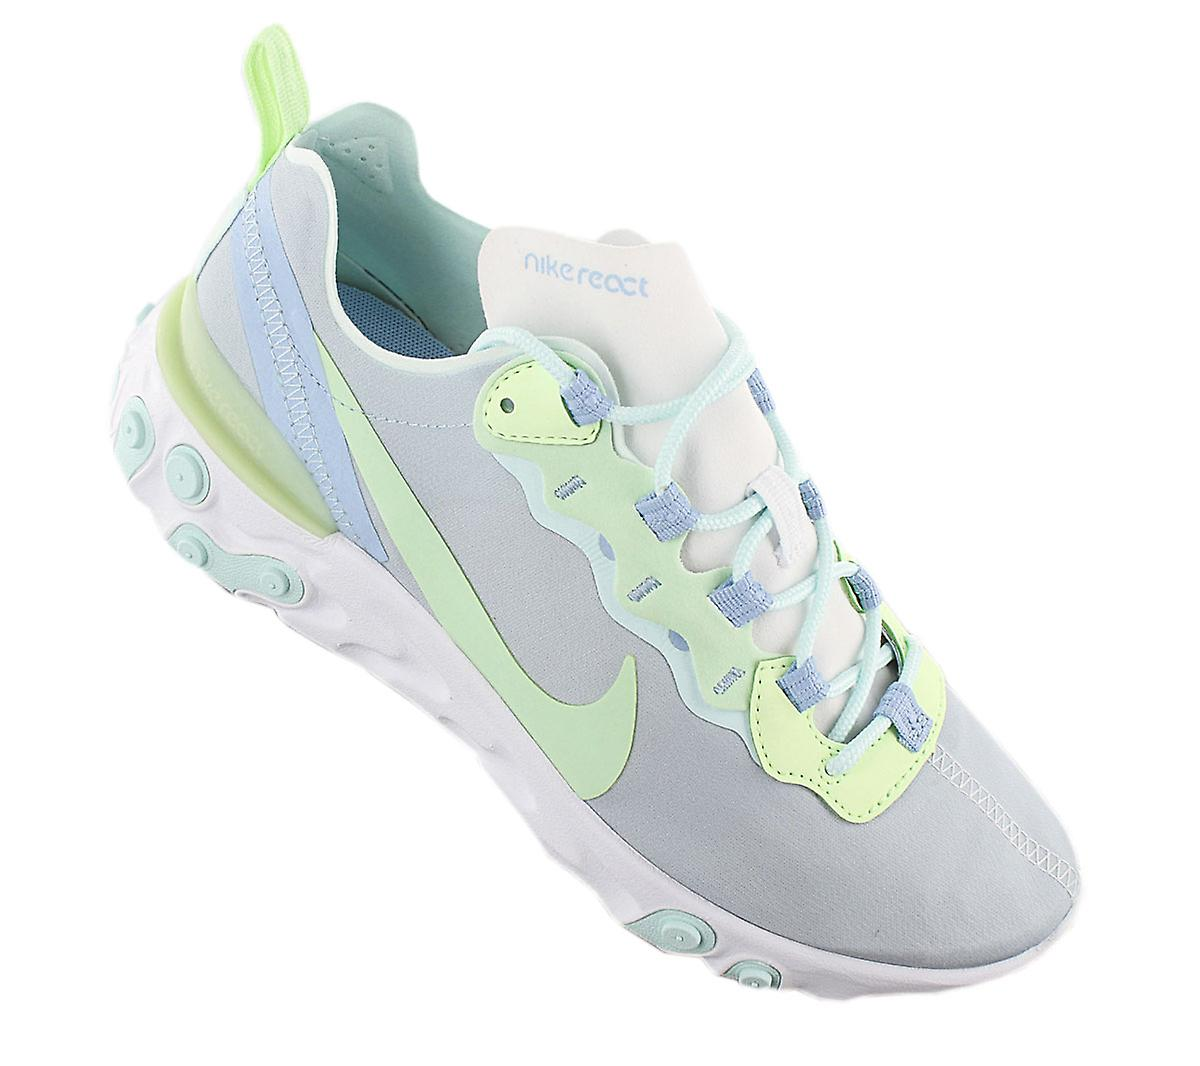 Nike React Element 55 - Chaussures Pour femmes Grey BQ2728-100 Sneakers Chaussures de sport